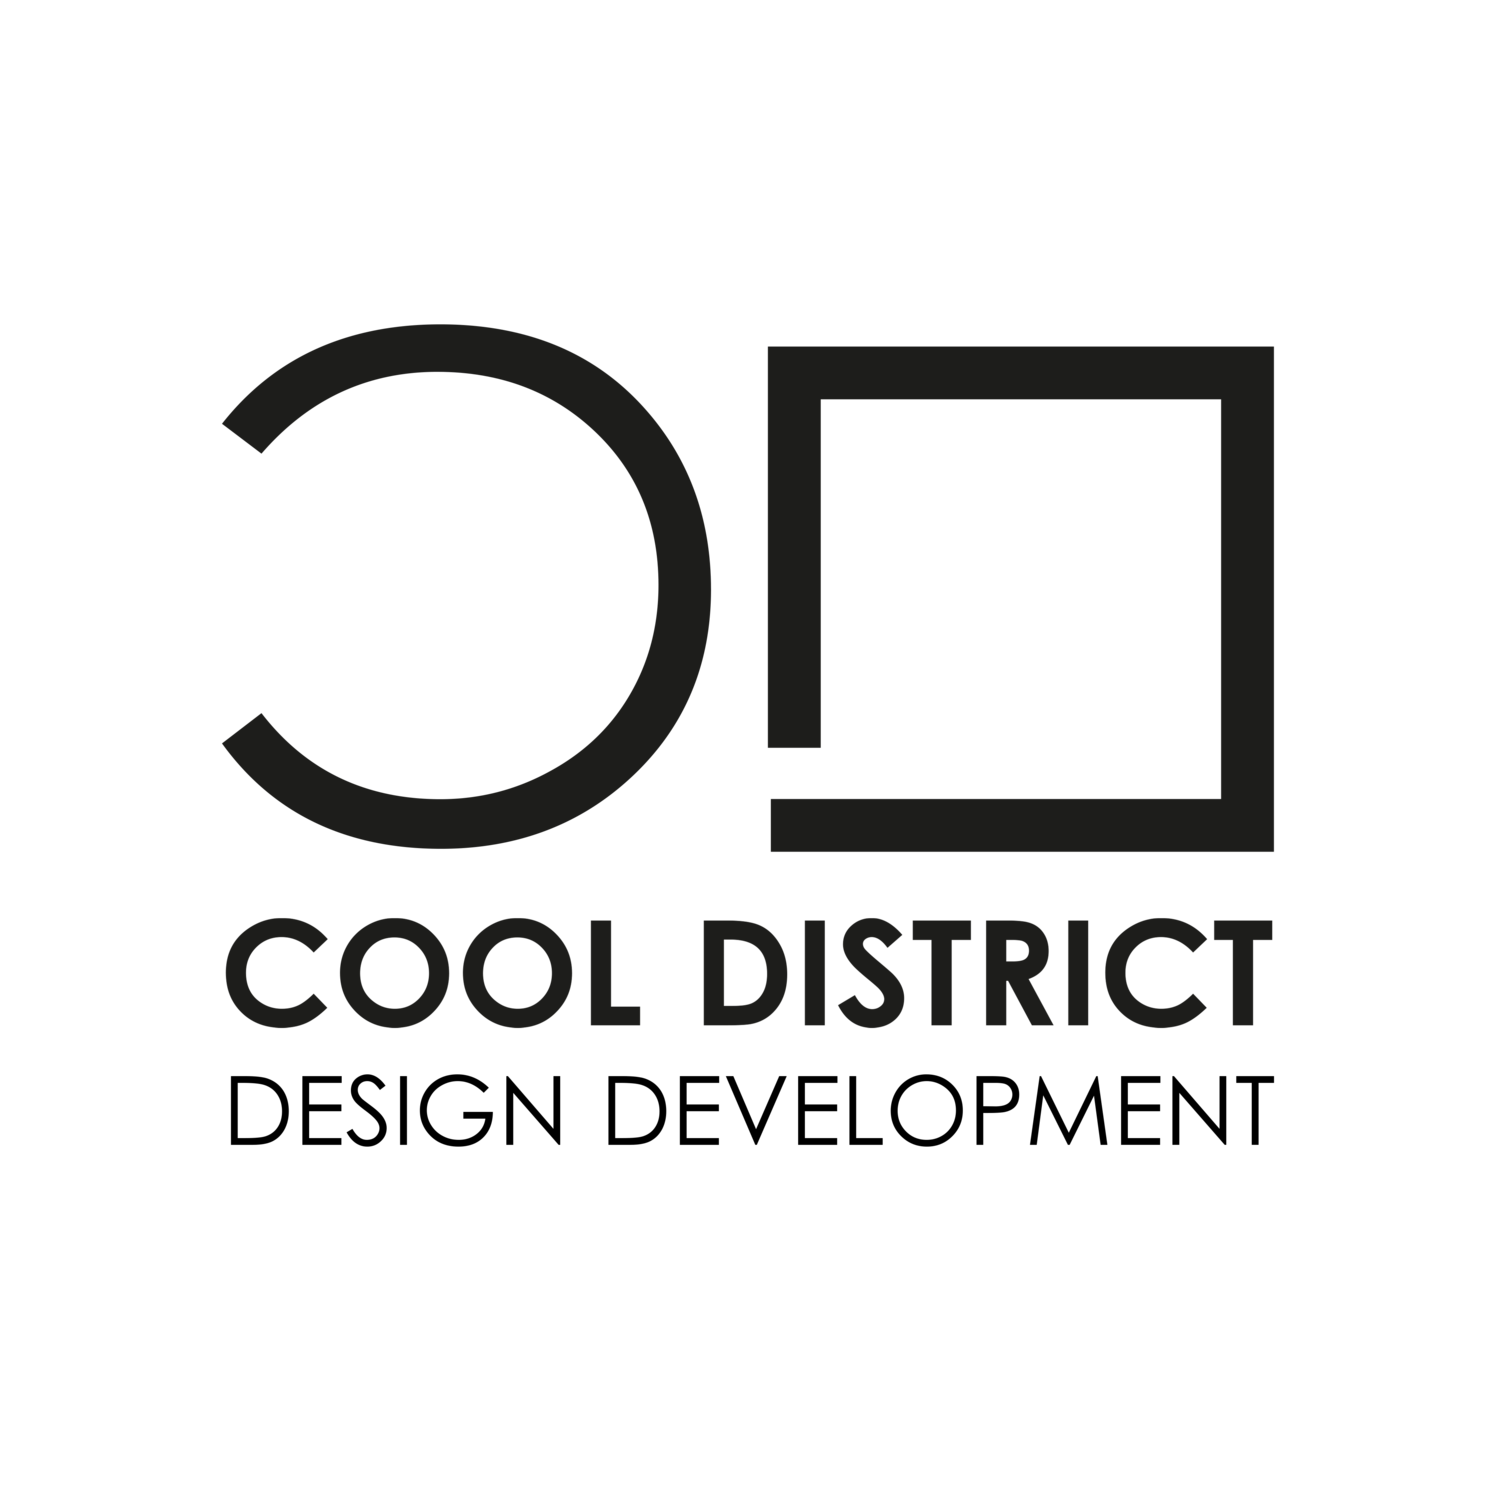 Cool District